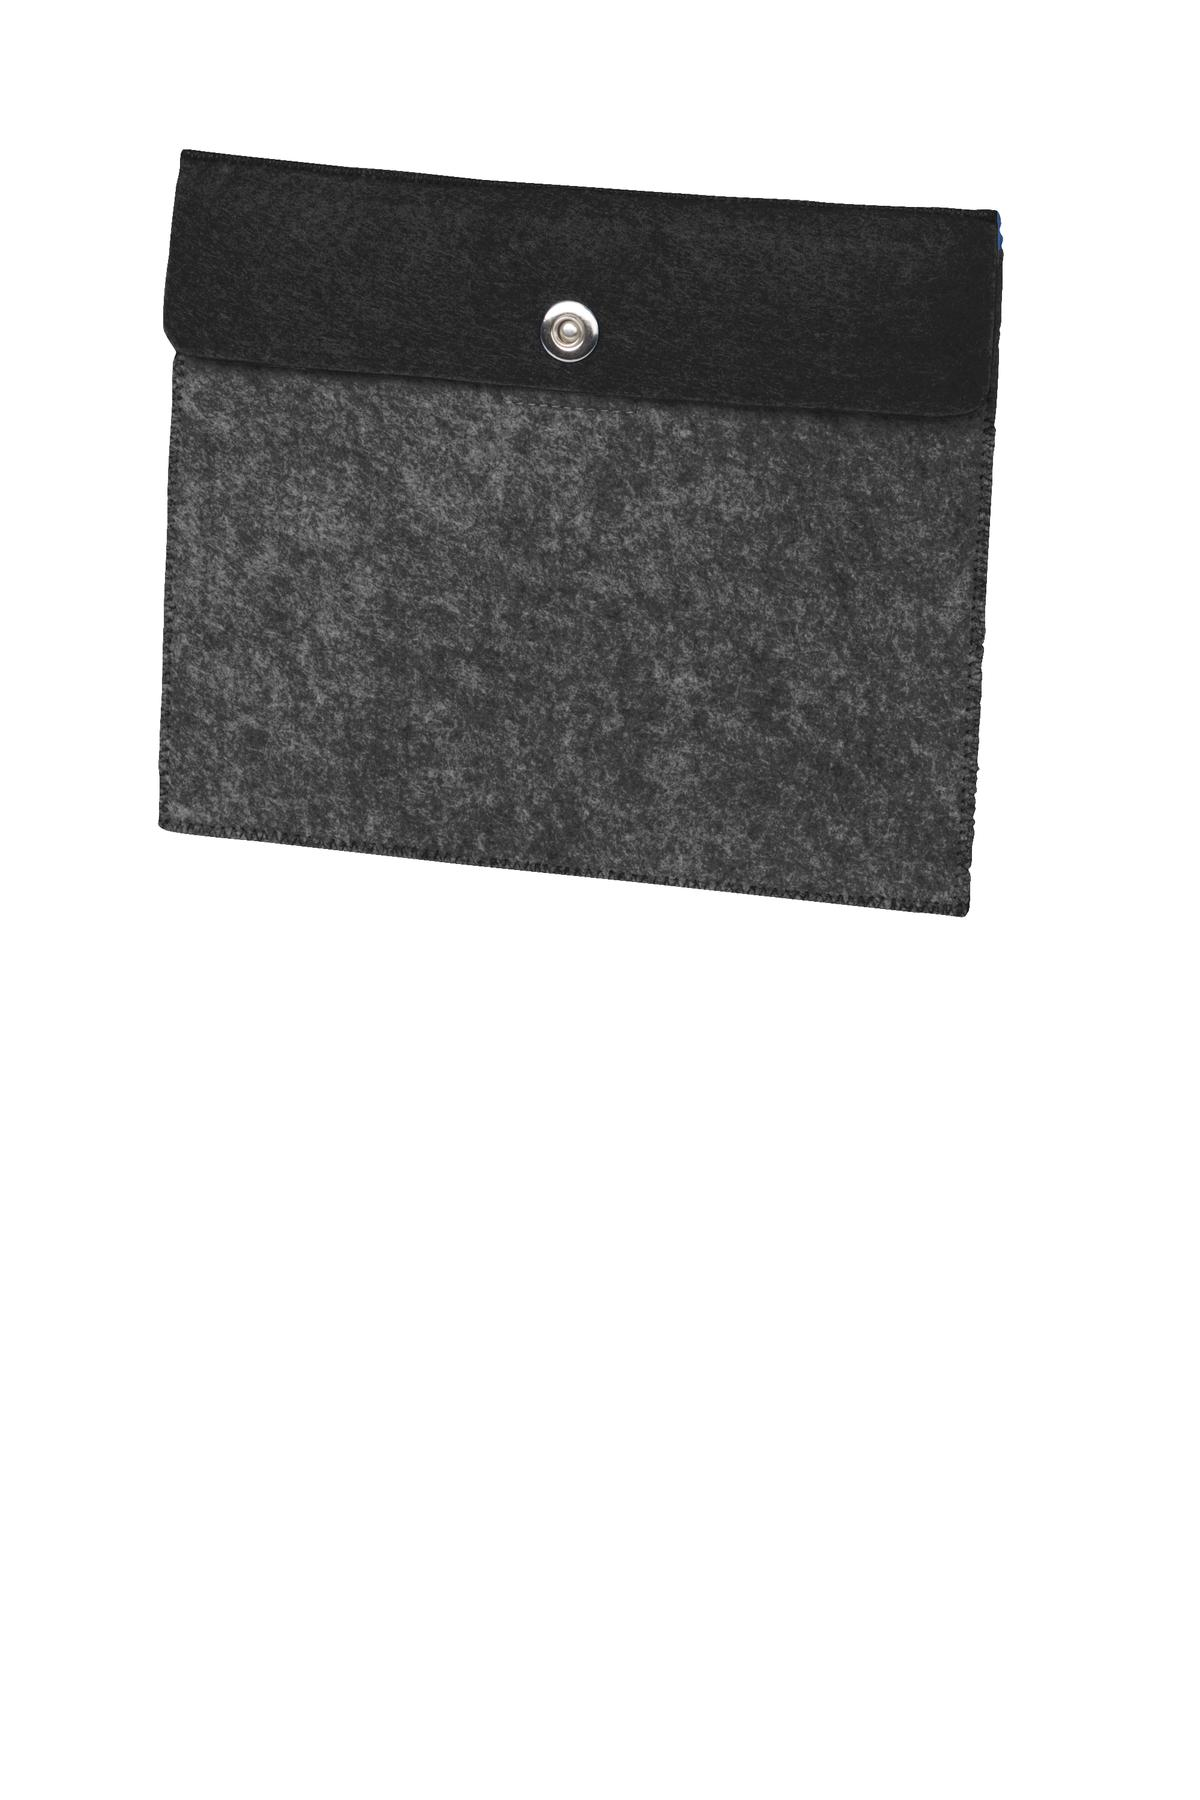 Port Authority ®  Felt Tablet Sleeve. BG653S